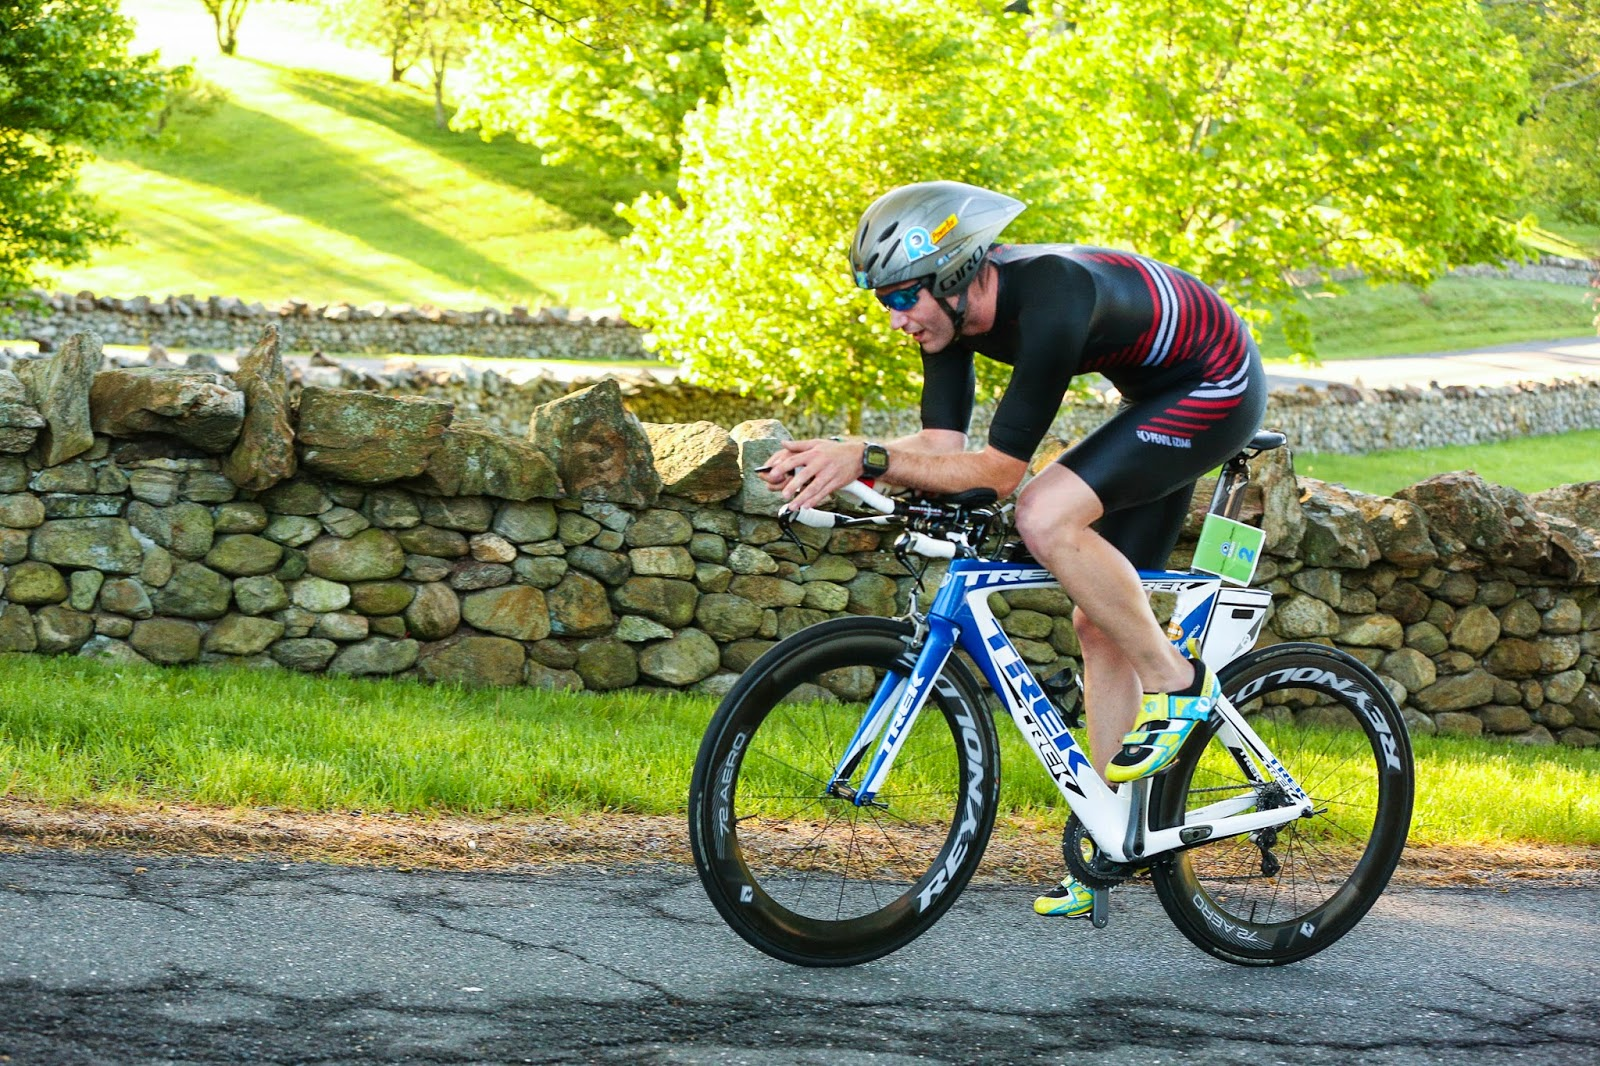 rev3tri quassyct 000063 The Hook Brings You Back: 171 Miles of Racing in 8 Days Report